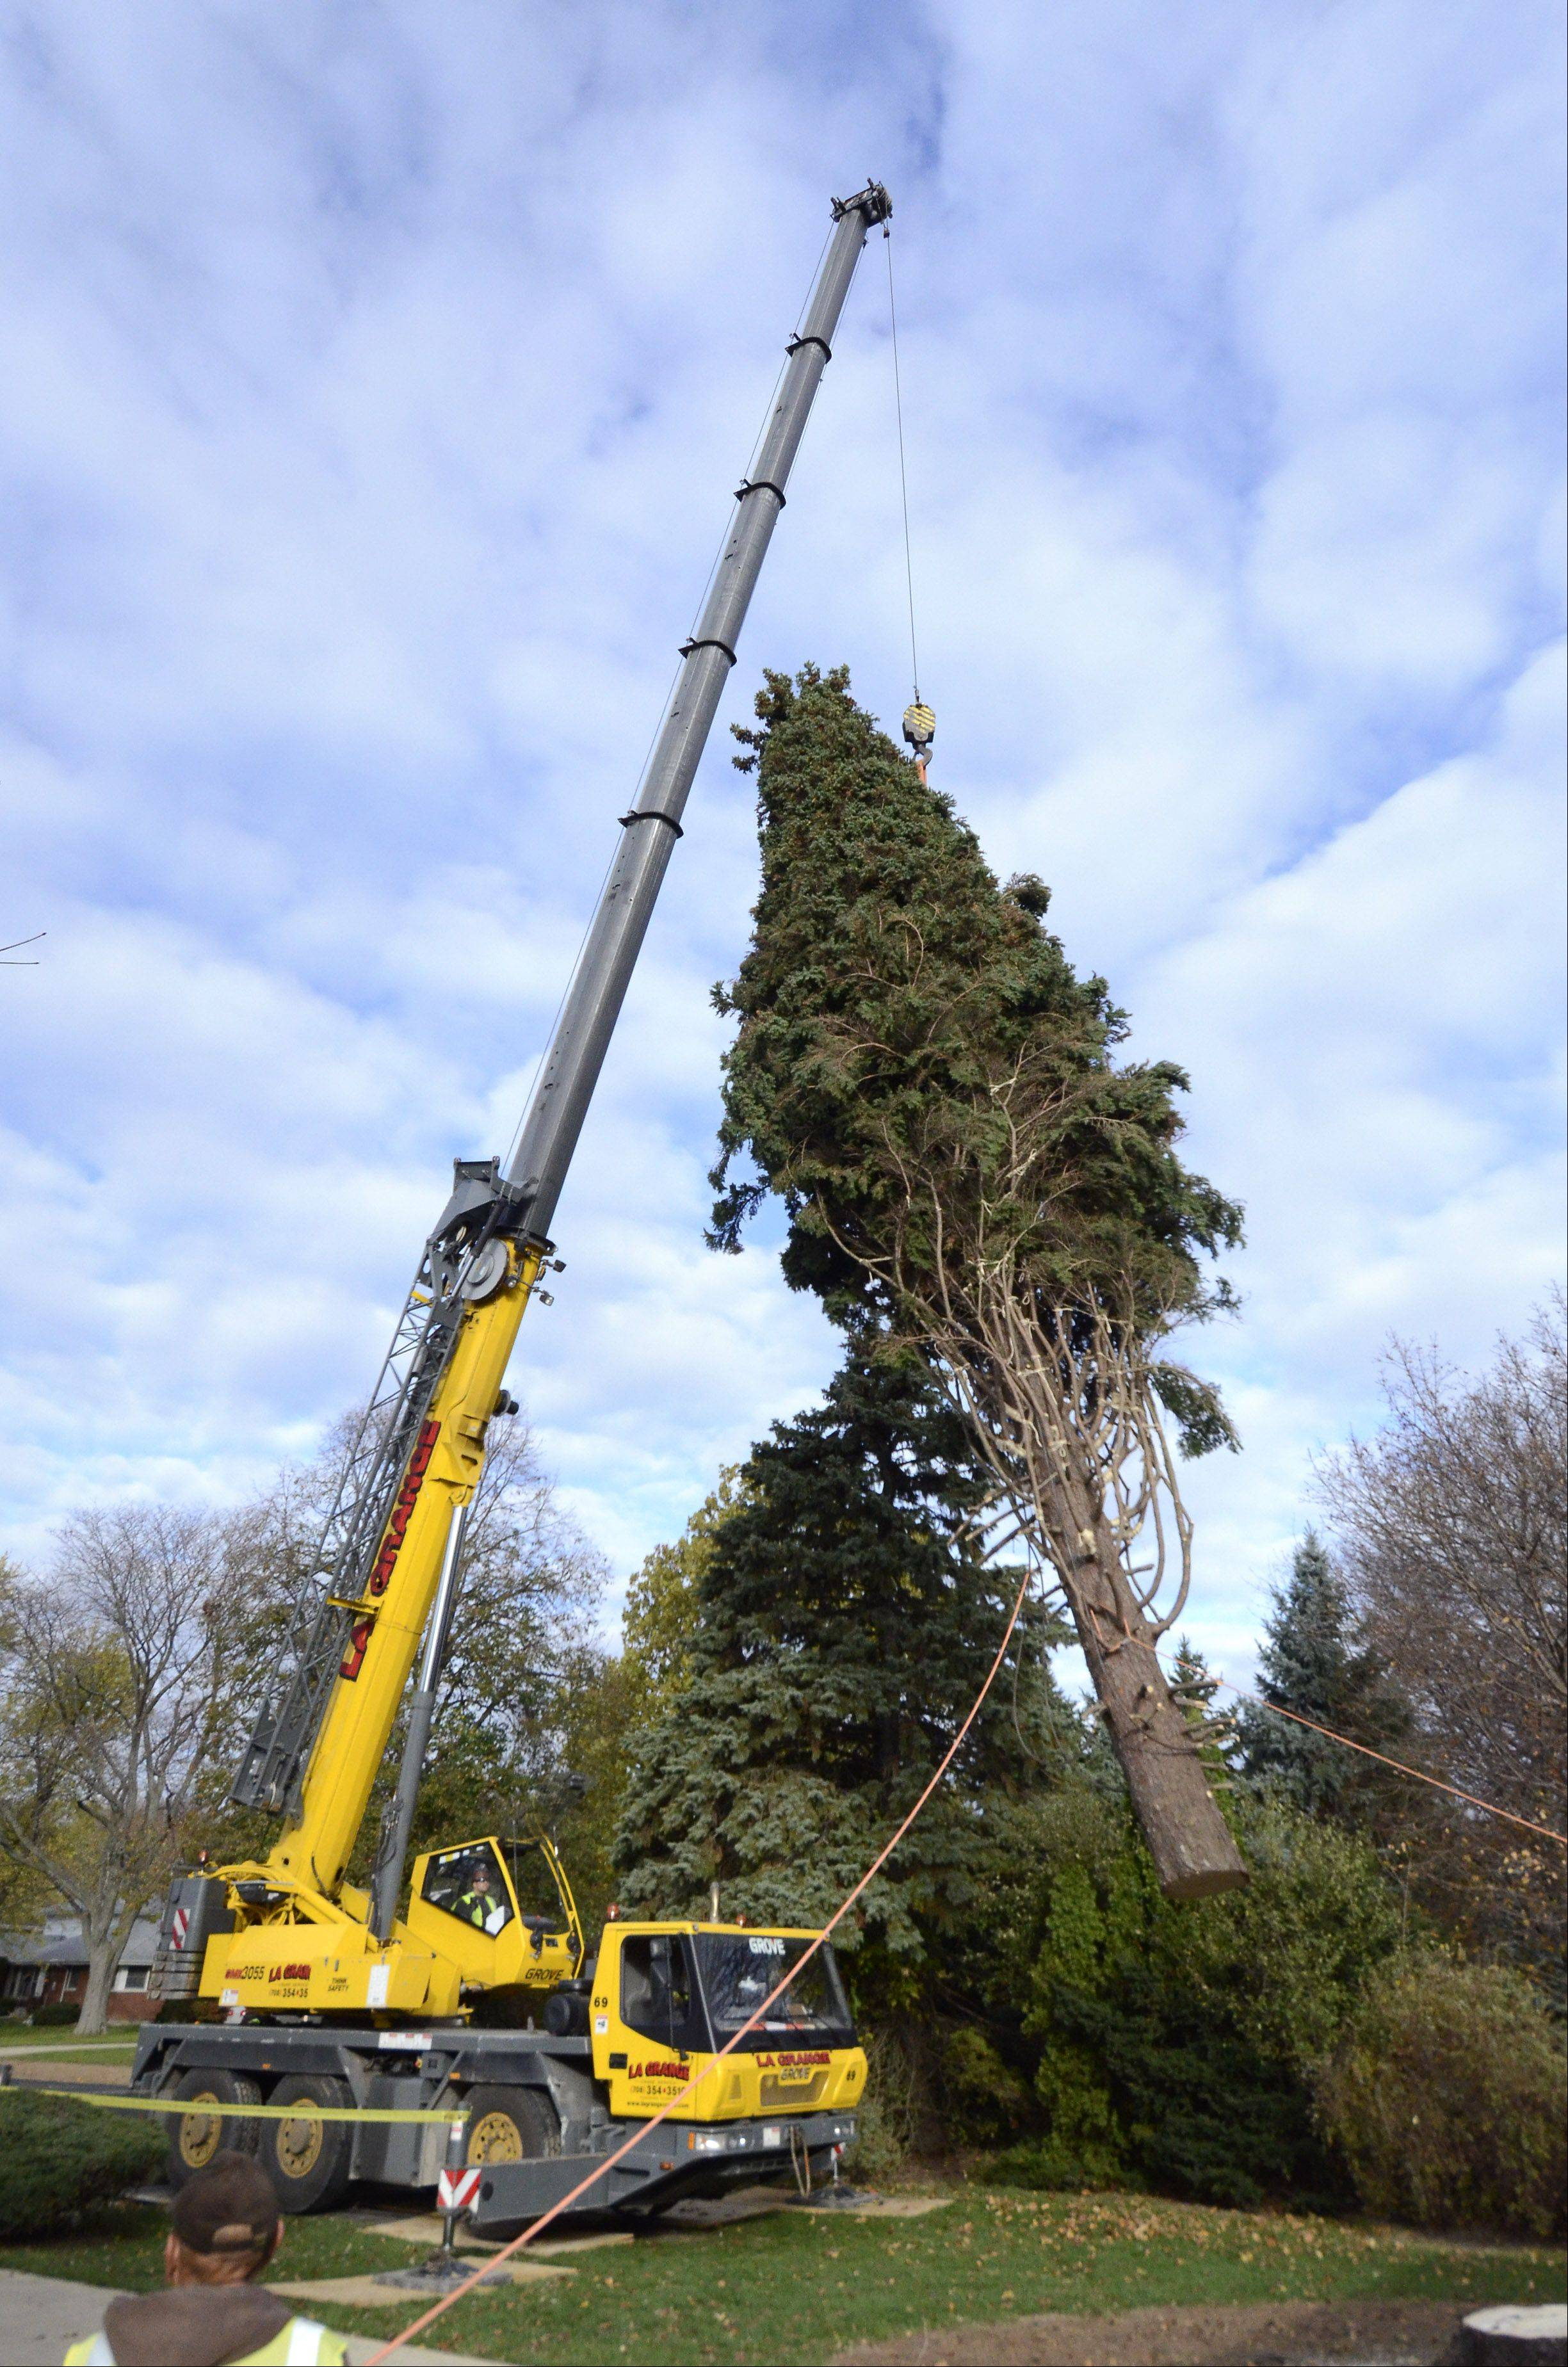 A 64-foot tall Colorado spruce tree selected to be the Christmas tree for Daley Plaza in Chicago is hoisted by a crane after being cut down Thursday morning at the Prospect Heights home of Barbara Theiszmann.